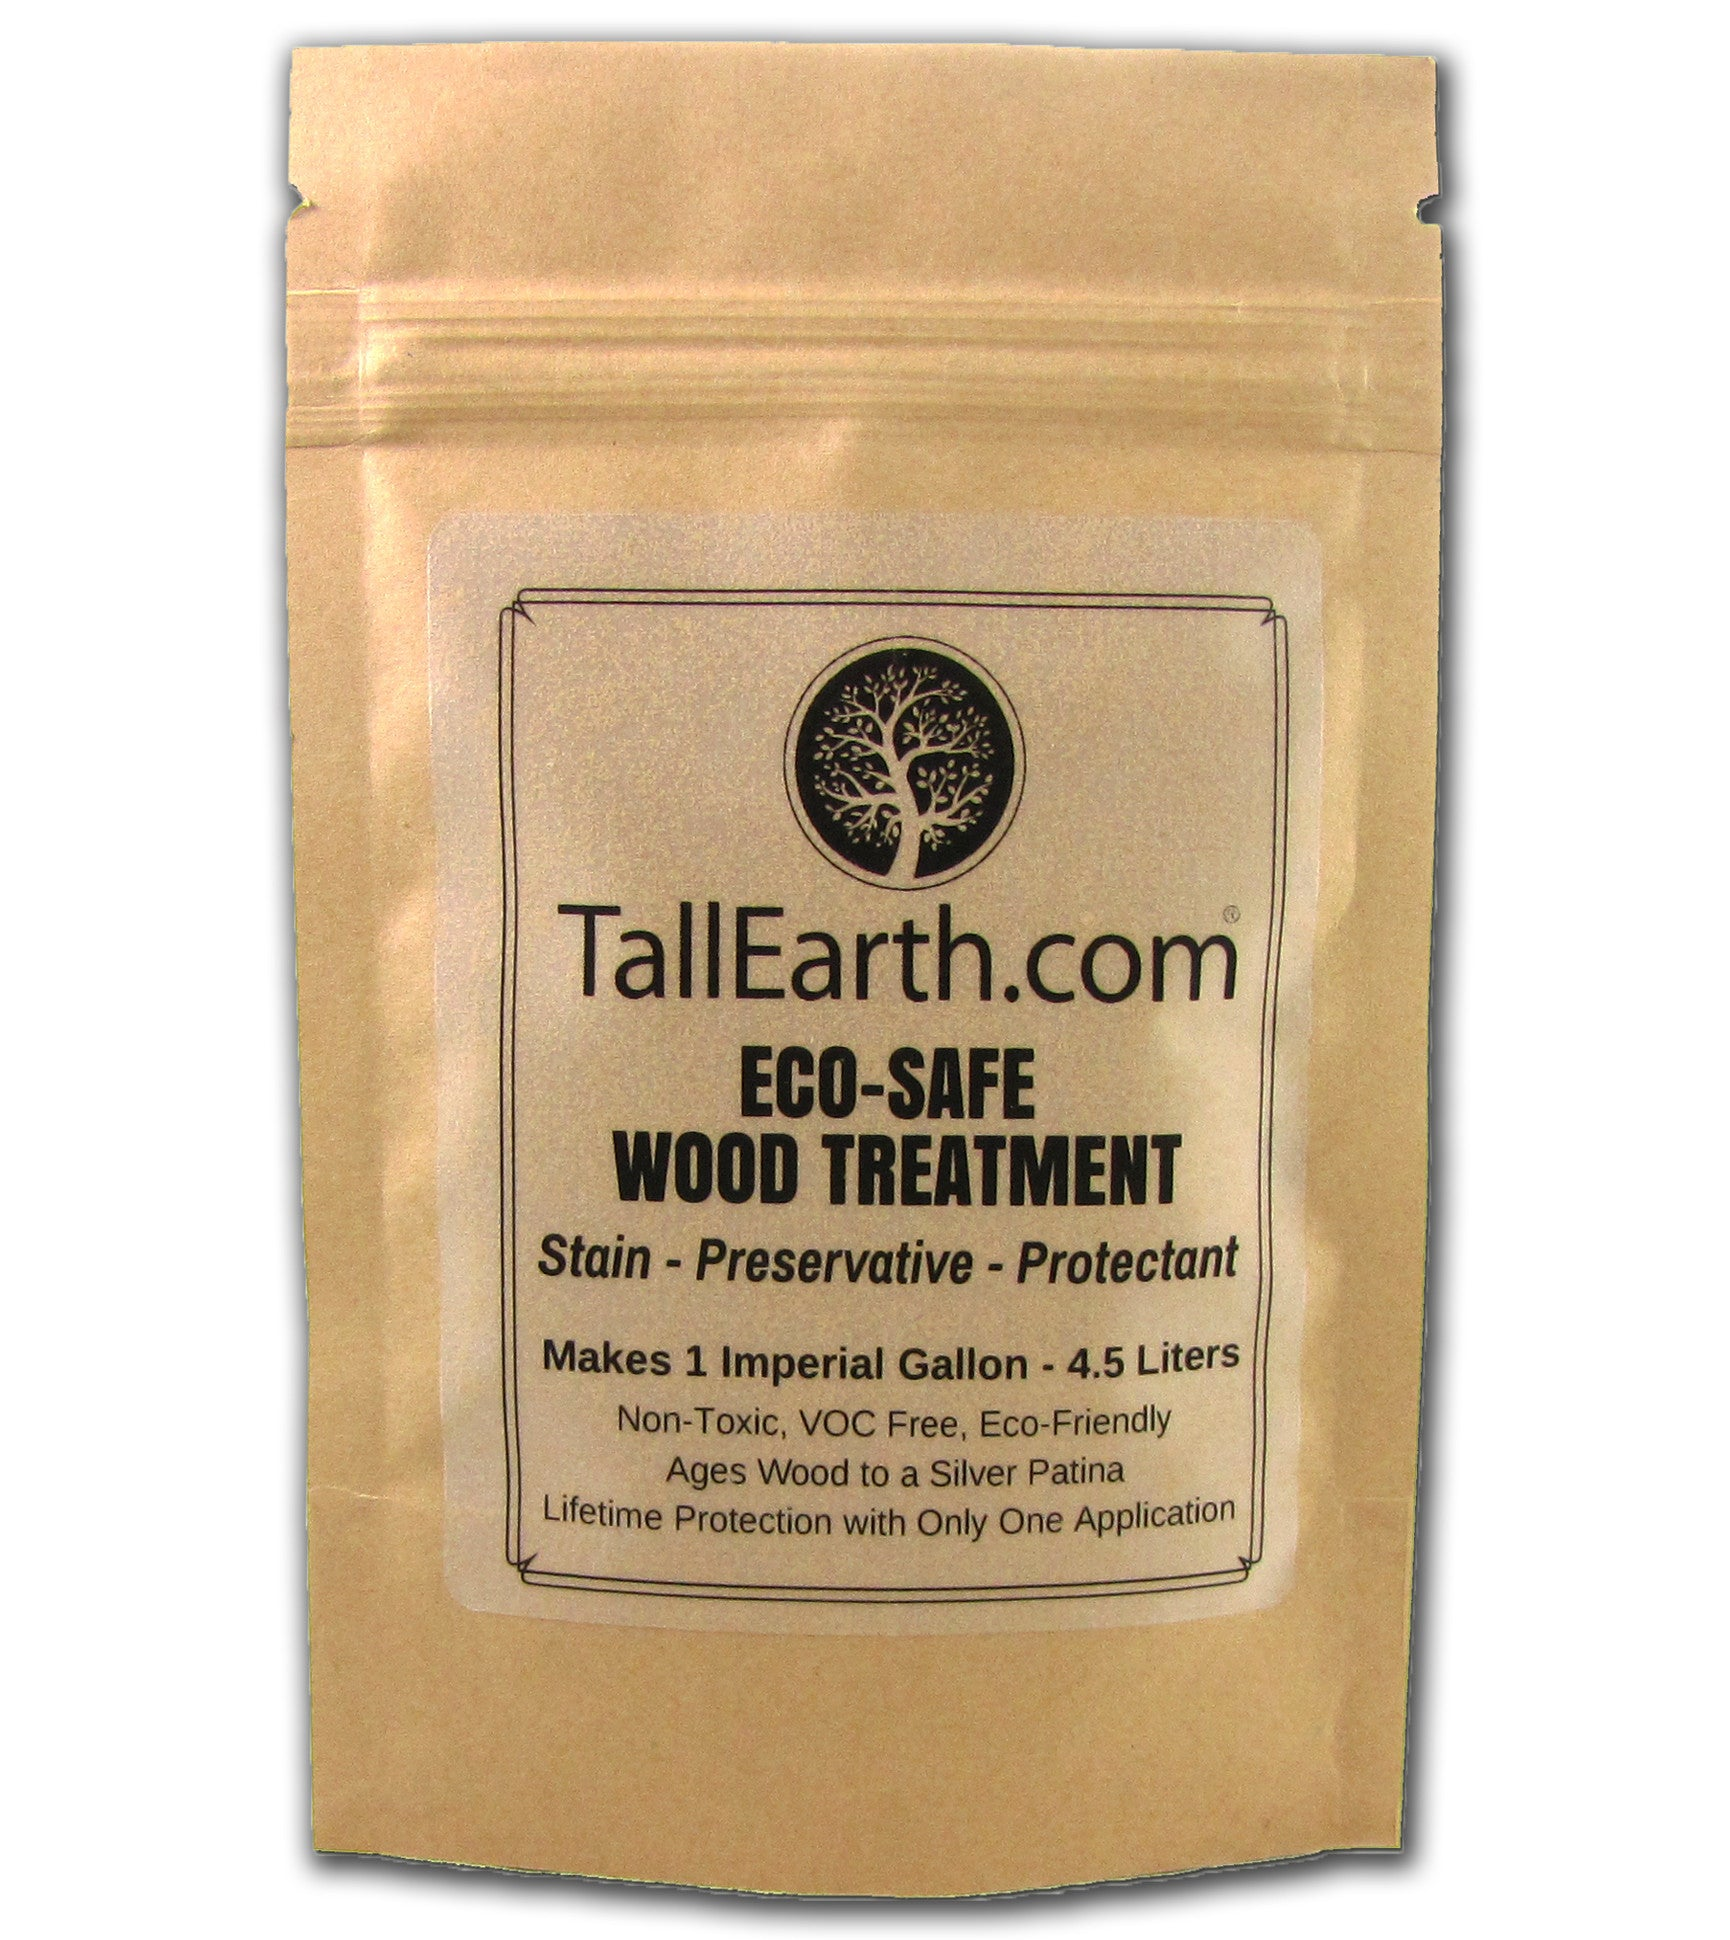 ECO-SAFE Wood Treatment - Non-Toxic Stain & Preservative - 1, 3